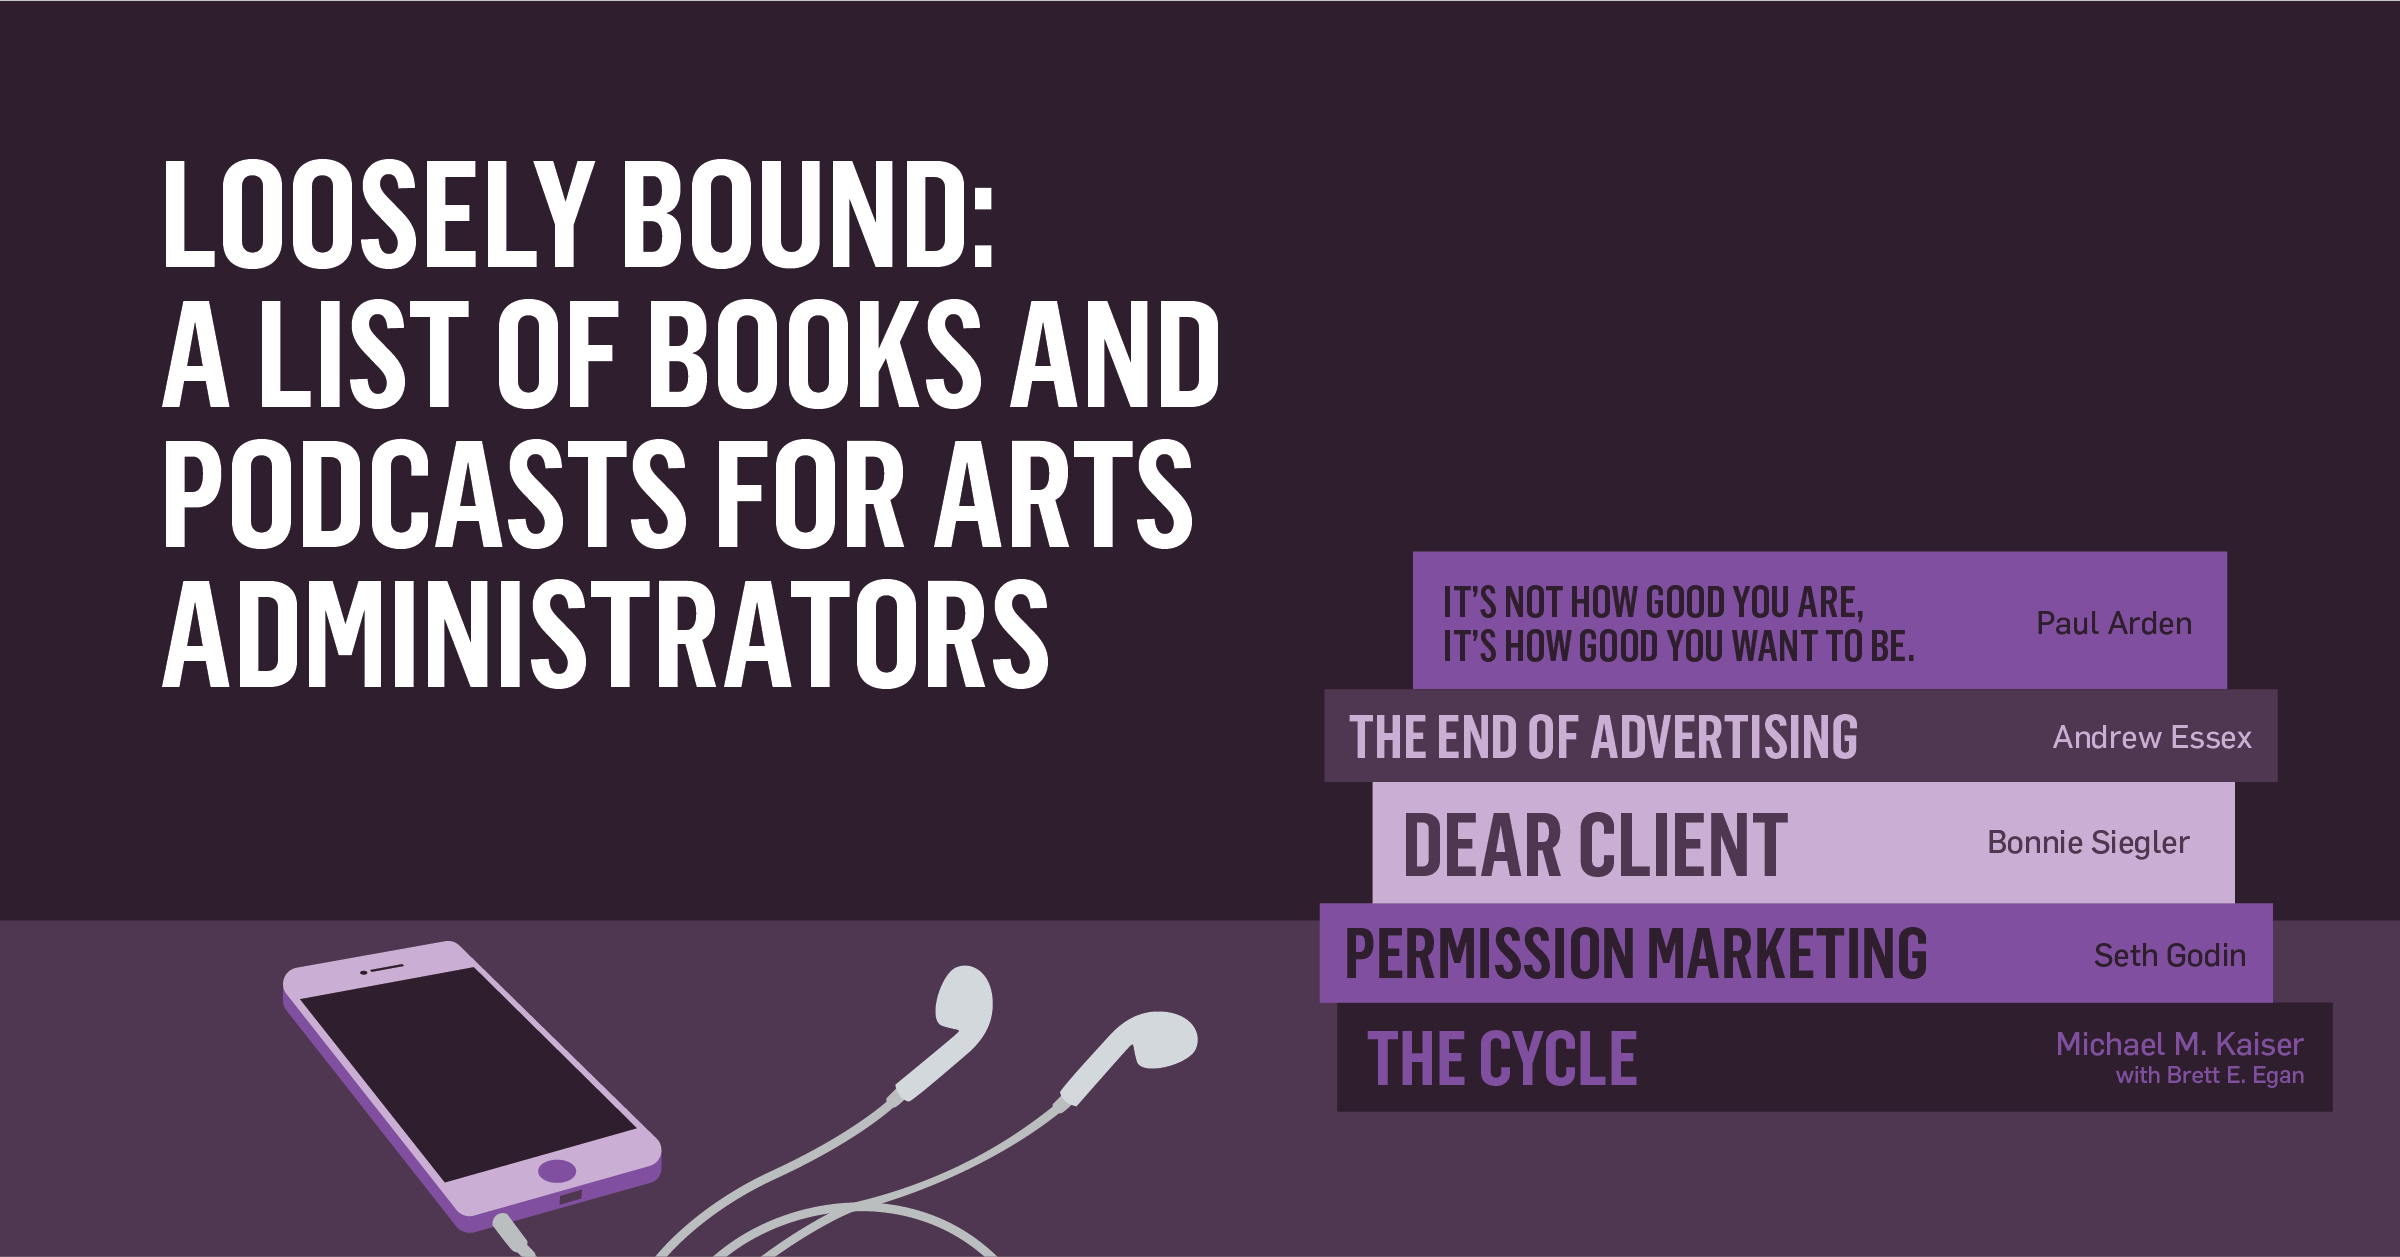 Loosely Bound: A List of Books and Podcasts for Arts Administrators